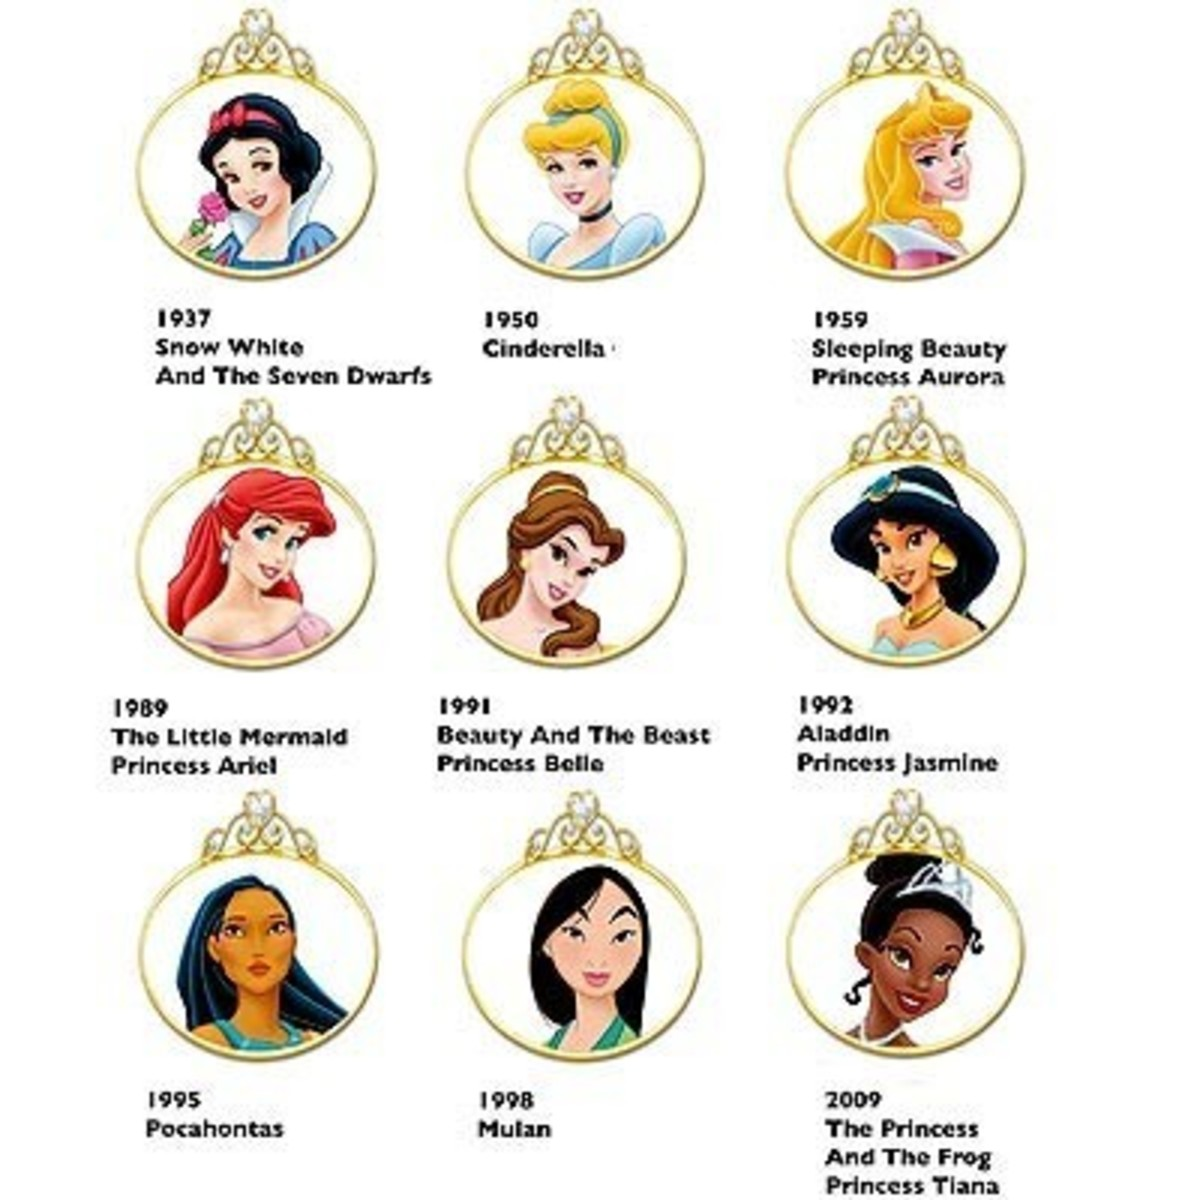 The last 4 Disney Princesses are of ethnic/exotic origin :D